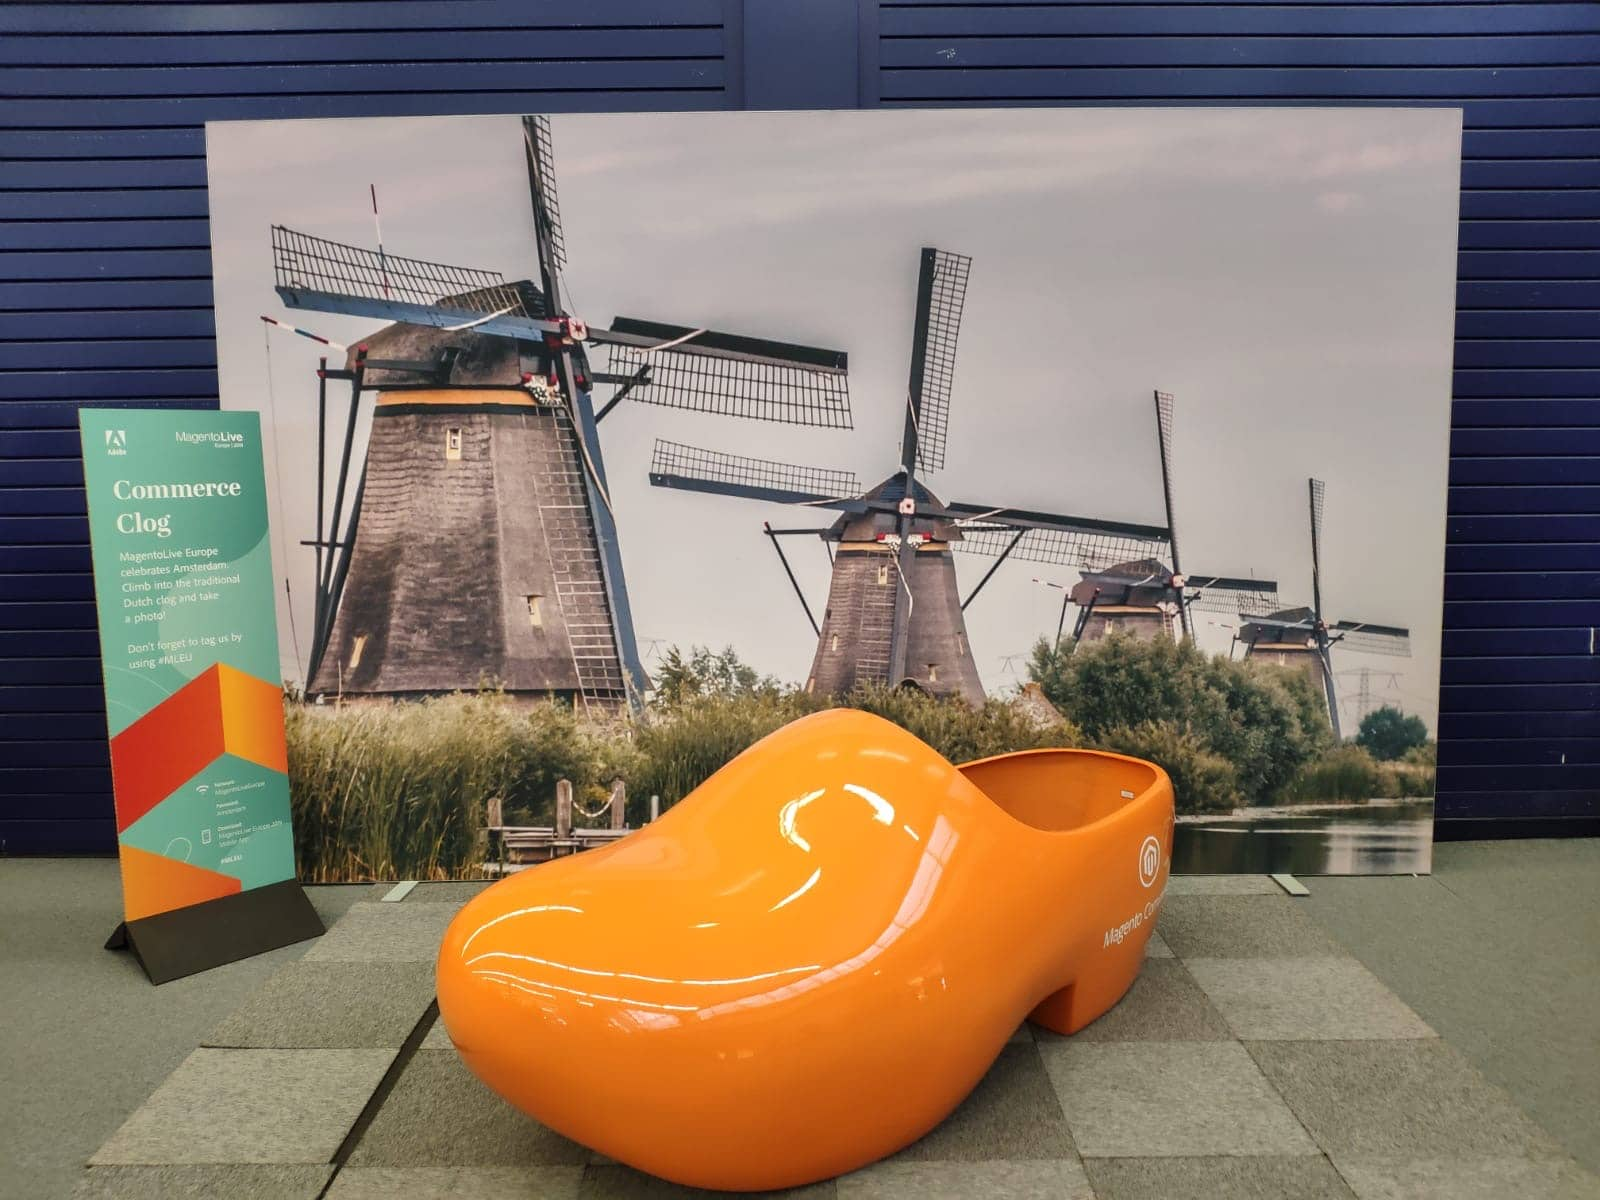 MLEU 2019: Our Roundup from Amsterdam